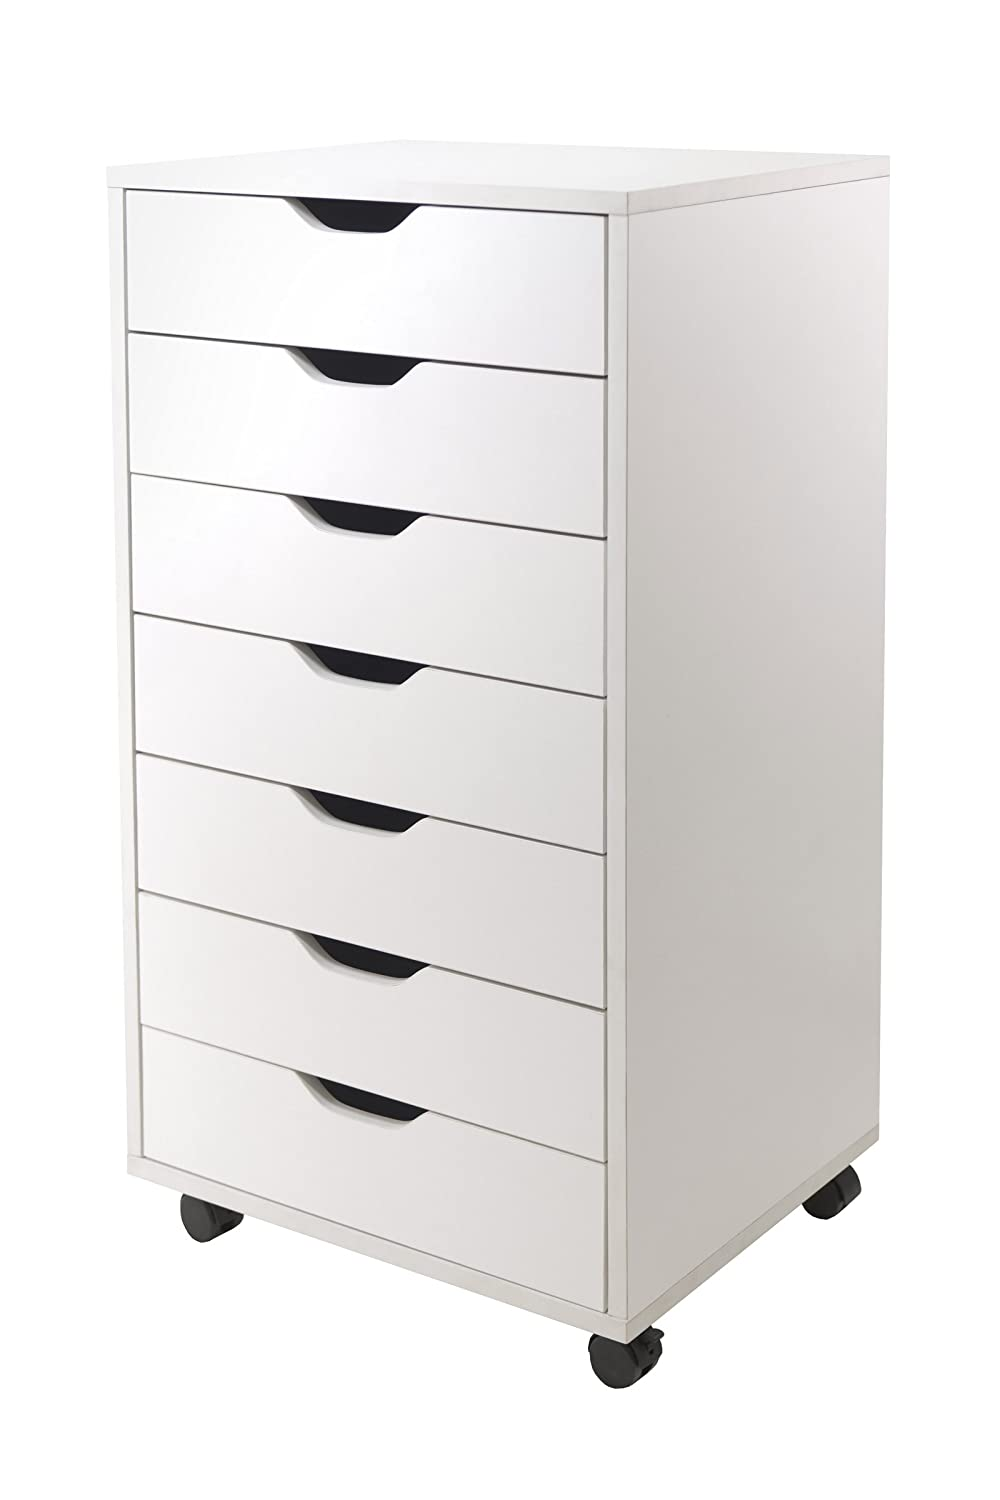 Amazon.com Winsome Halifax Cabinet for Closet/Office 7 Drawers White Kitchen u0026 Dining  sc 1 st  Amazon.com & Amazon.com: Winsome Halifax Cabinet for Closet/Office 7 Drawers ...